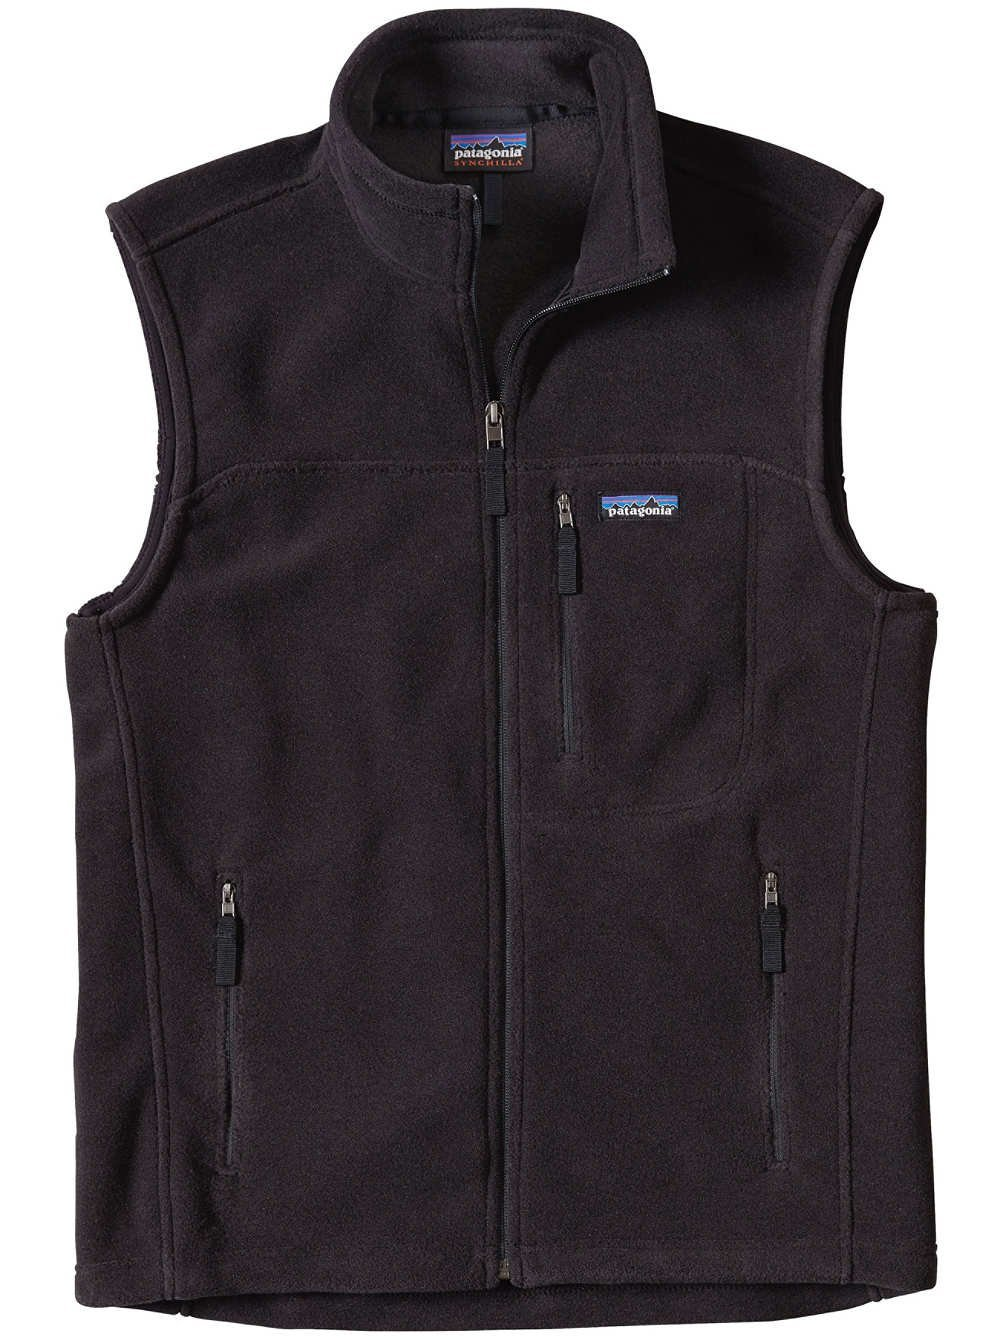 Patagonia Herren Classic Synch Weste